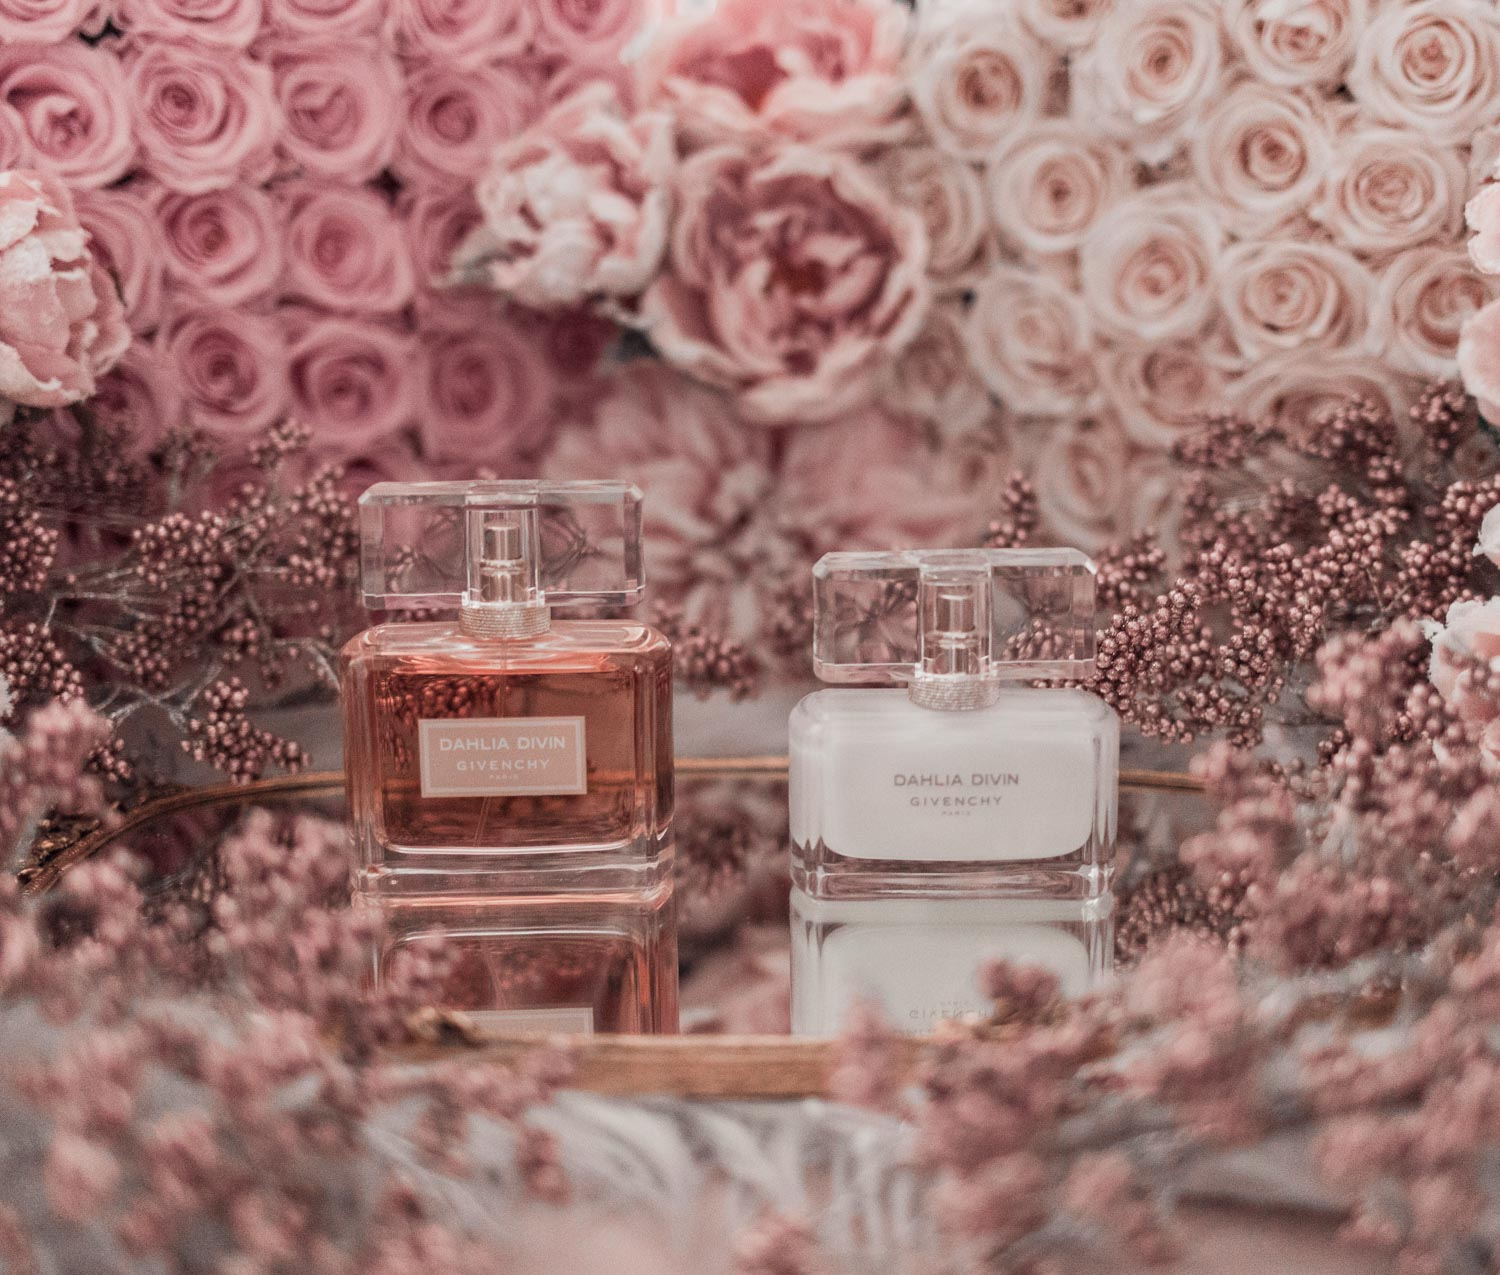 Feminine fashion blogger Elizabeth Hugen of Lizzie in Lace shares the best feminine perfumes and her girly fragrance collection including Givenchy Dahlia Divin